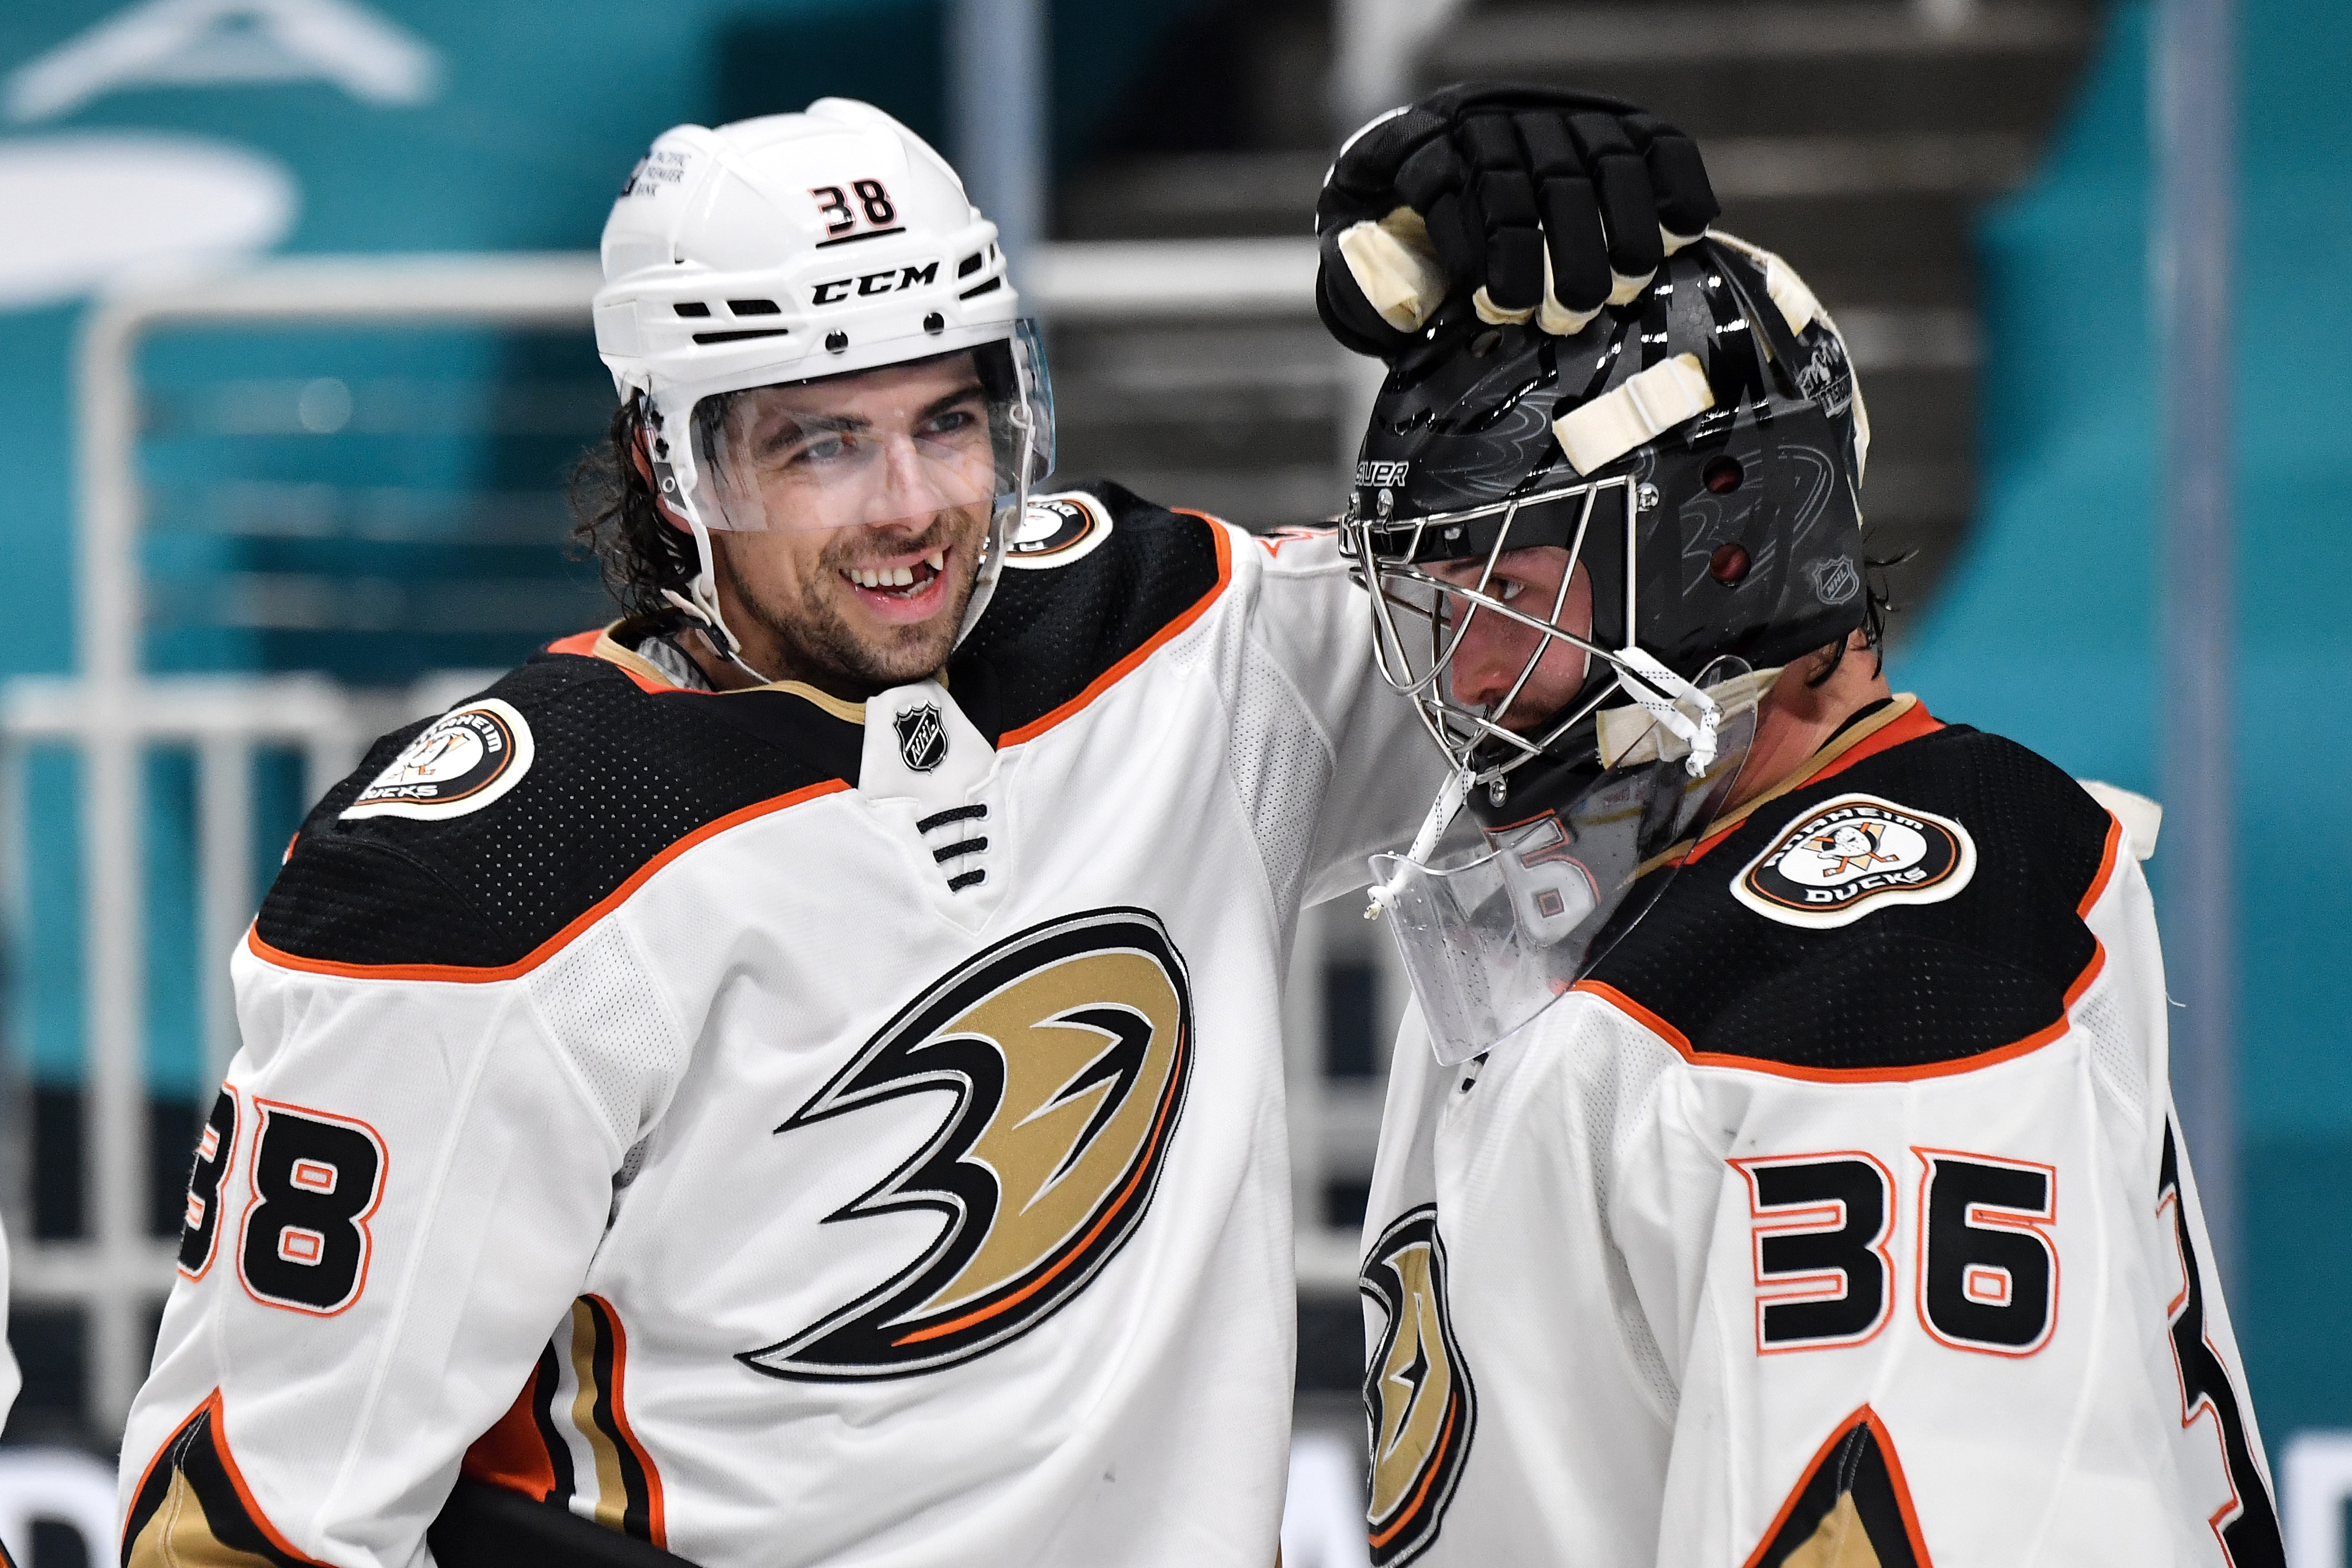 Derek Grant #38 and John Gibson #36 of the Anaheim Ducks celebrate after defeating the San Jose Sharks 5-1 at SAP Center on April 6, 2021 in San Jose, California.